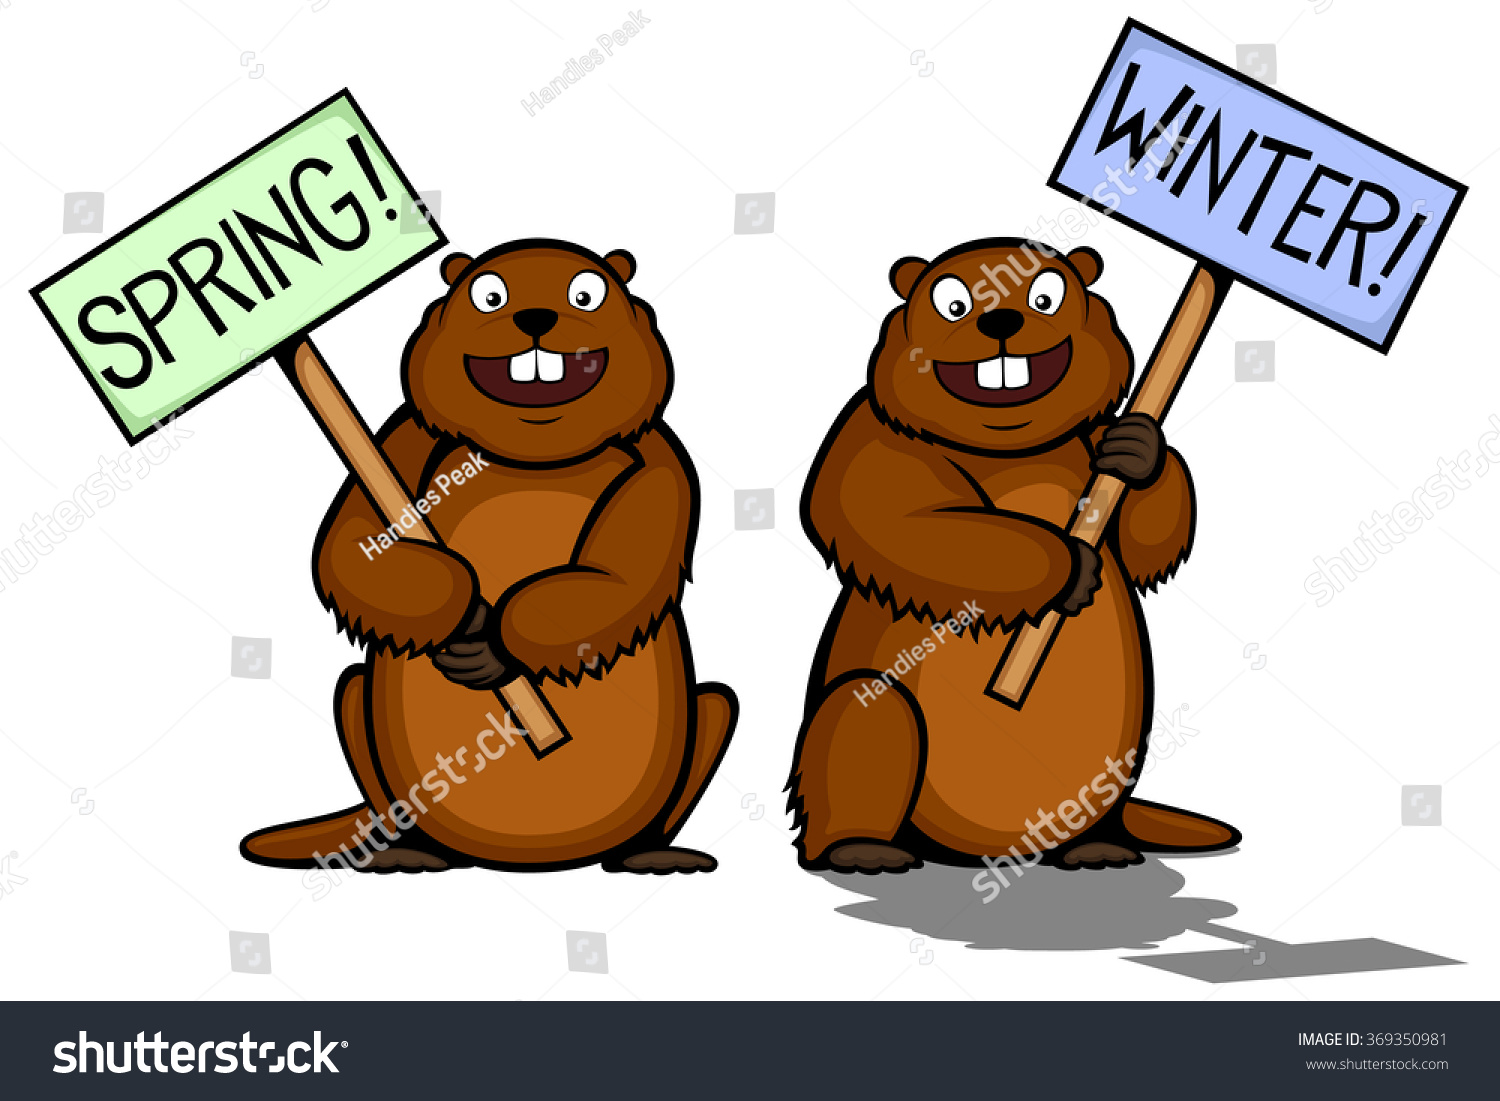 Groundhog clipart with and without shadow clip art royalty free library Groundhog shadow clipart 5 » Clipart Station clip art royalty free library